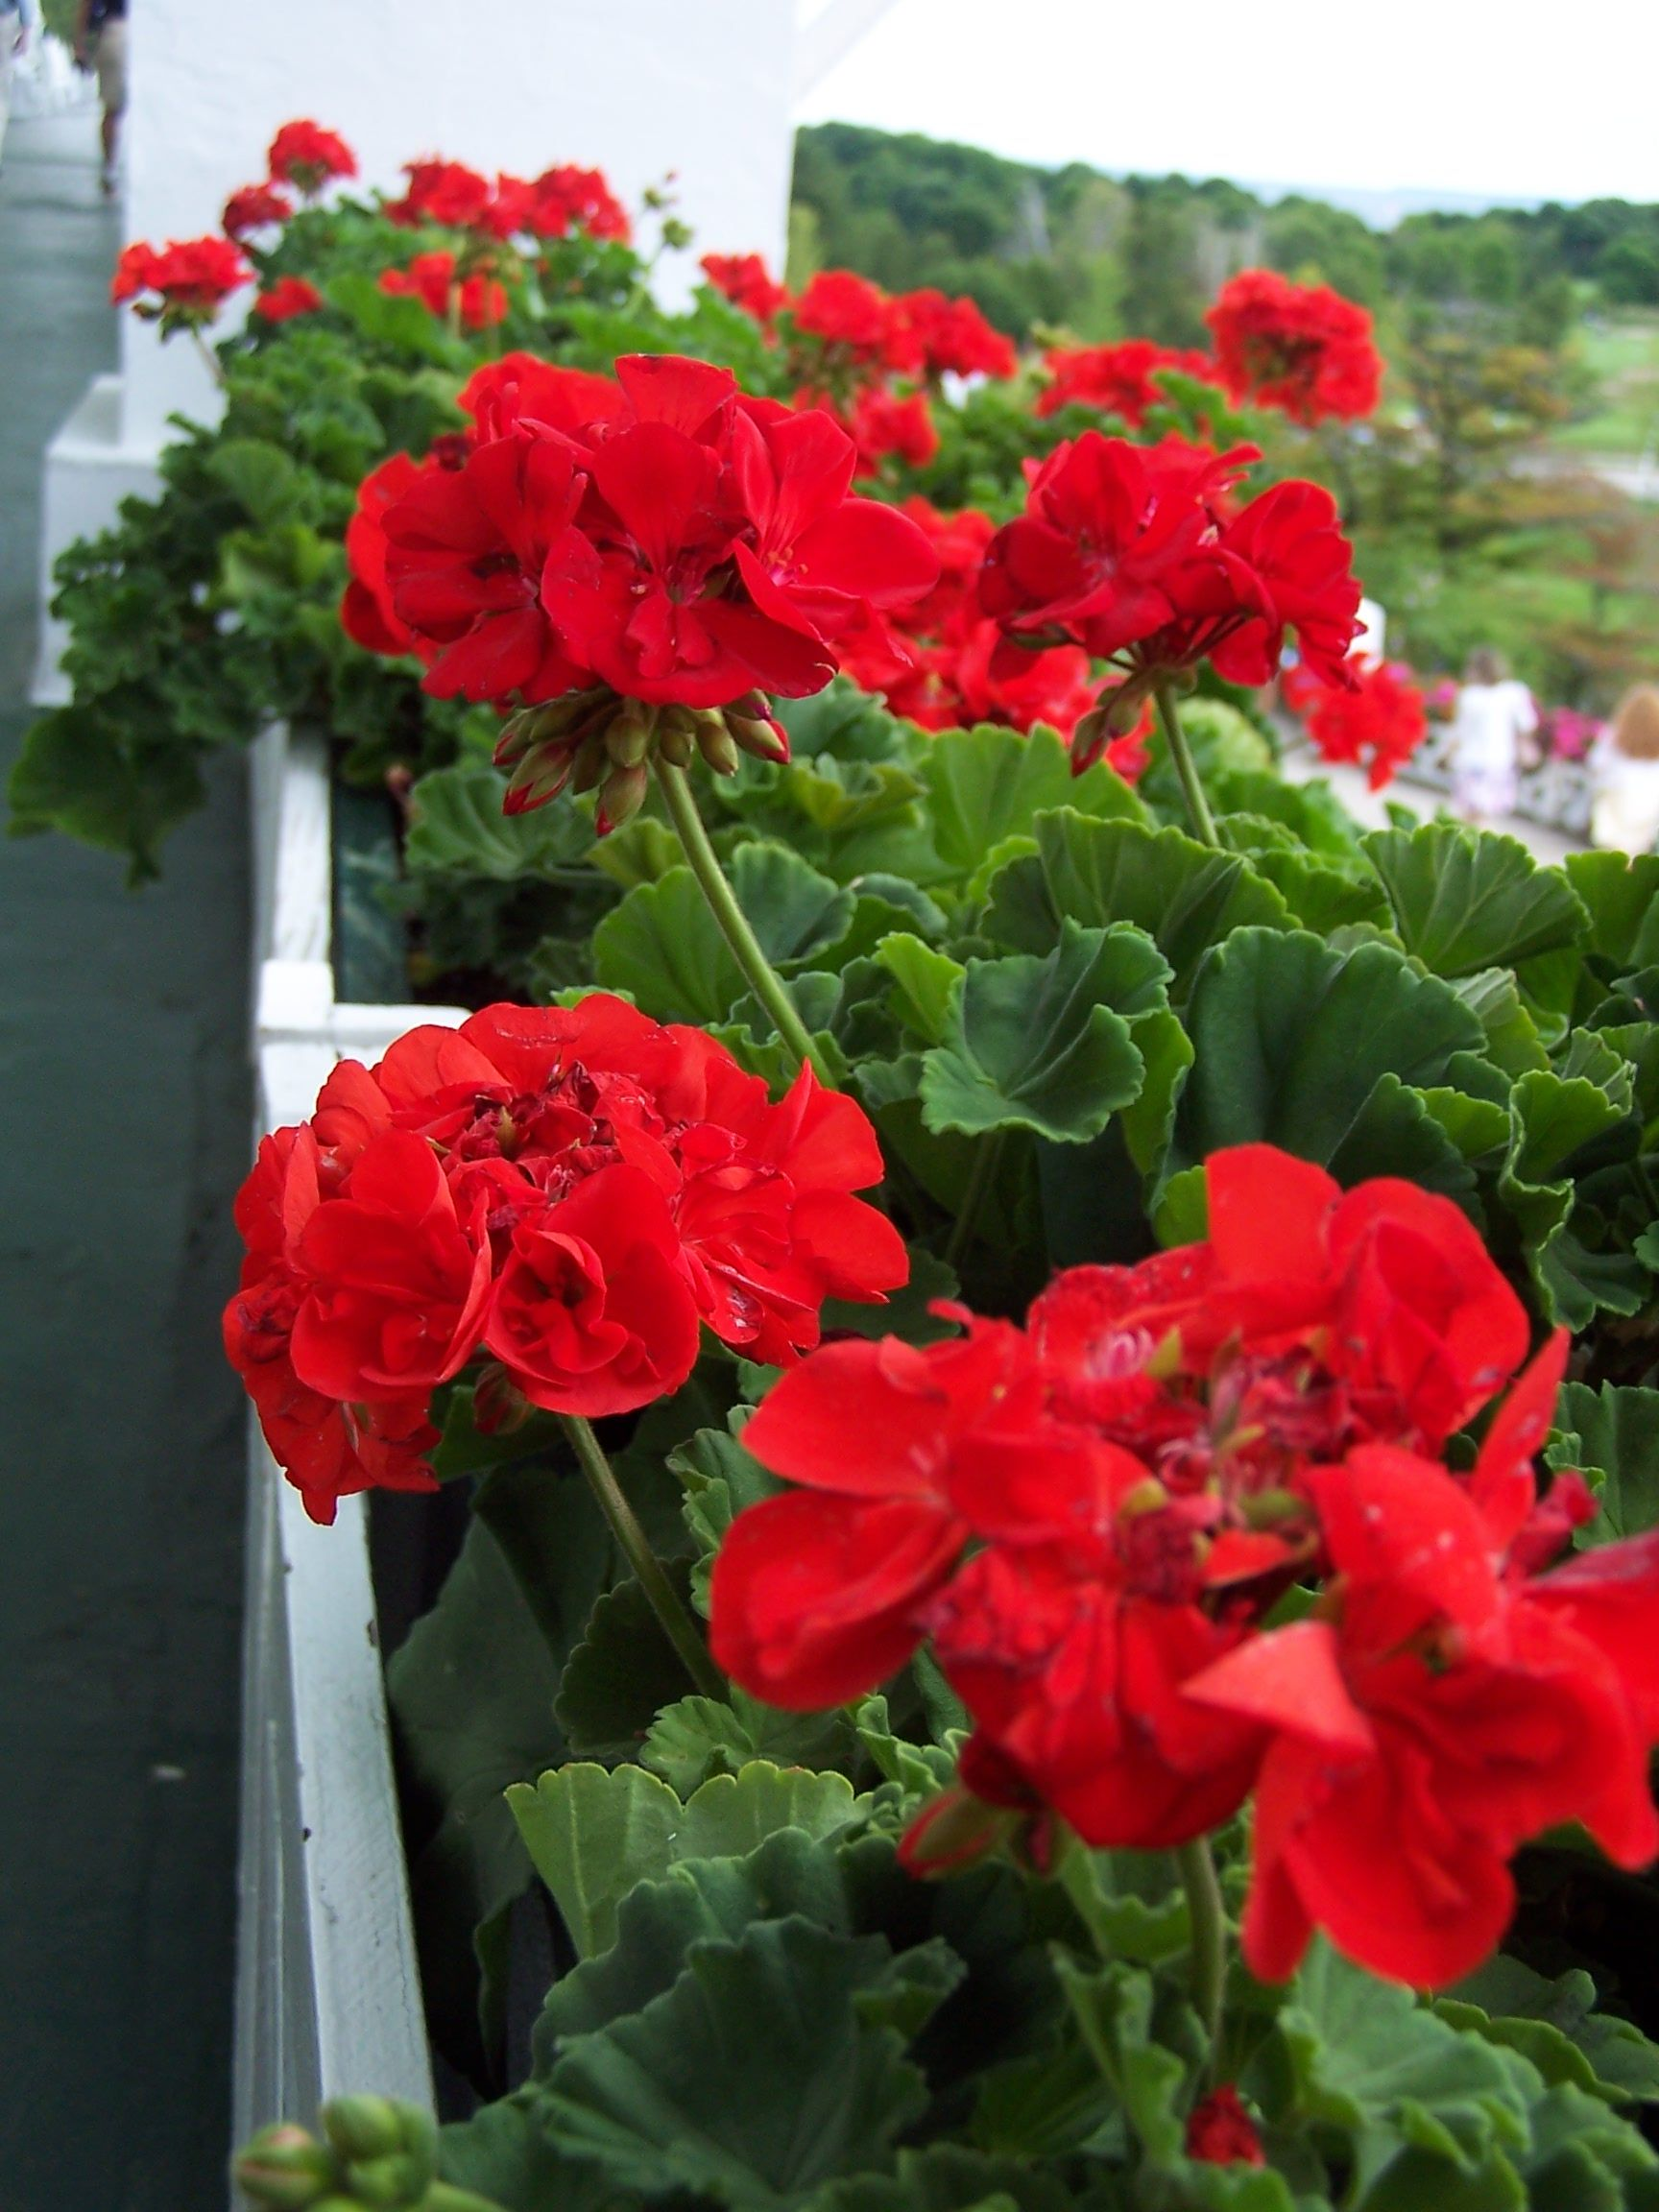 View from the front The Grand Hotel Red geraniums